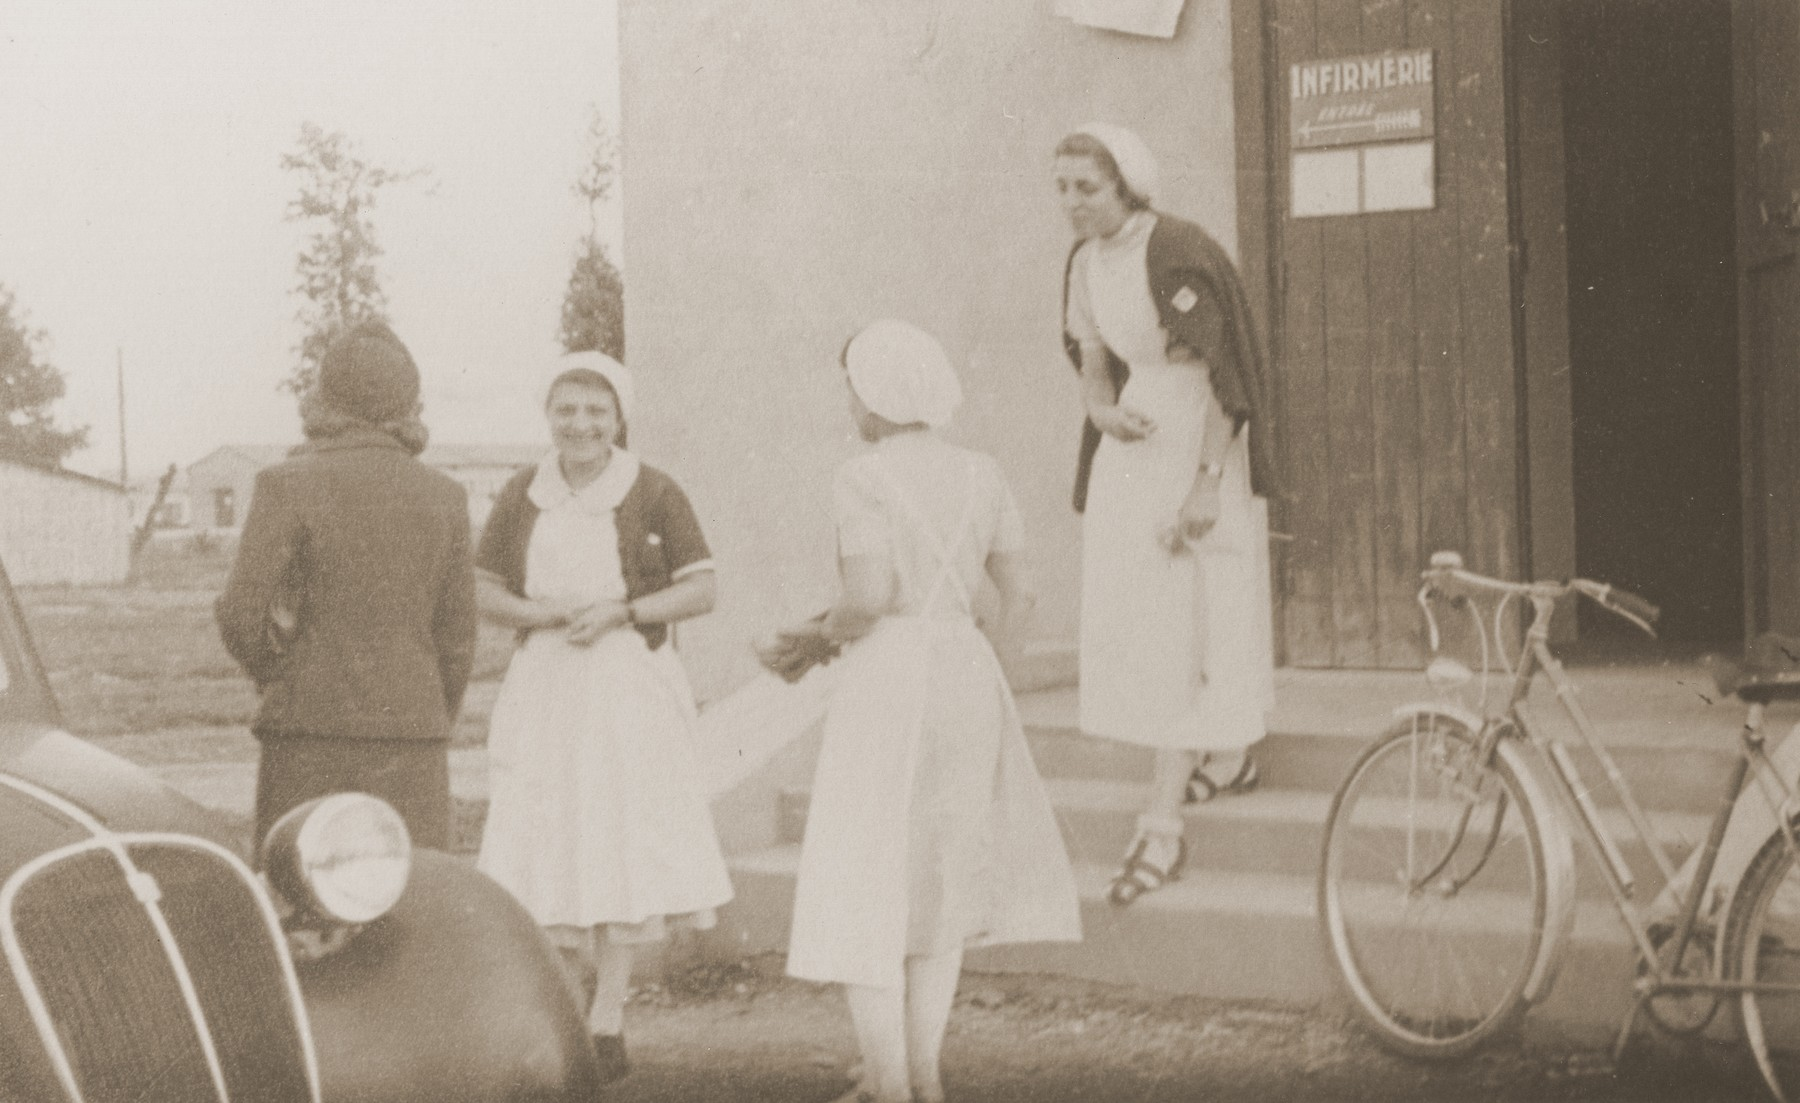 Nurses at the Recebedou camp infirmary. Second from the left is Isabelle Peloux, the aunt of Marie Genevieve Parmentier.  Marie Genevieve Parmentier was a ten year-old French girl living in Paris at the time of the German occupation in 1940. Her widowed mother sent her to safety with an old relative in Ariège in the South of France. She sooned joined her aunt, Isabelle Peloux, a military nurse, at the camp of Recebedou. While there she attended primary school at nearby Portet-sur-Garonne, before returning to her family in the summer of 1941.